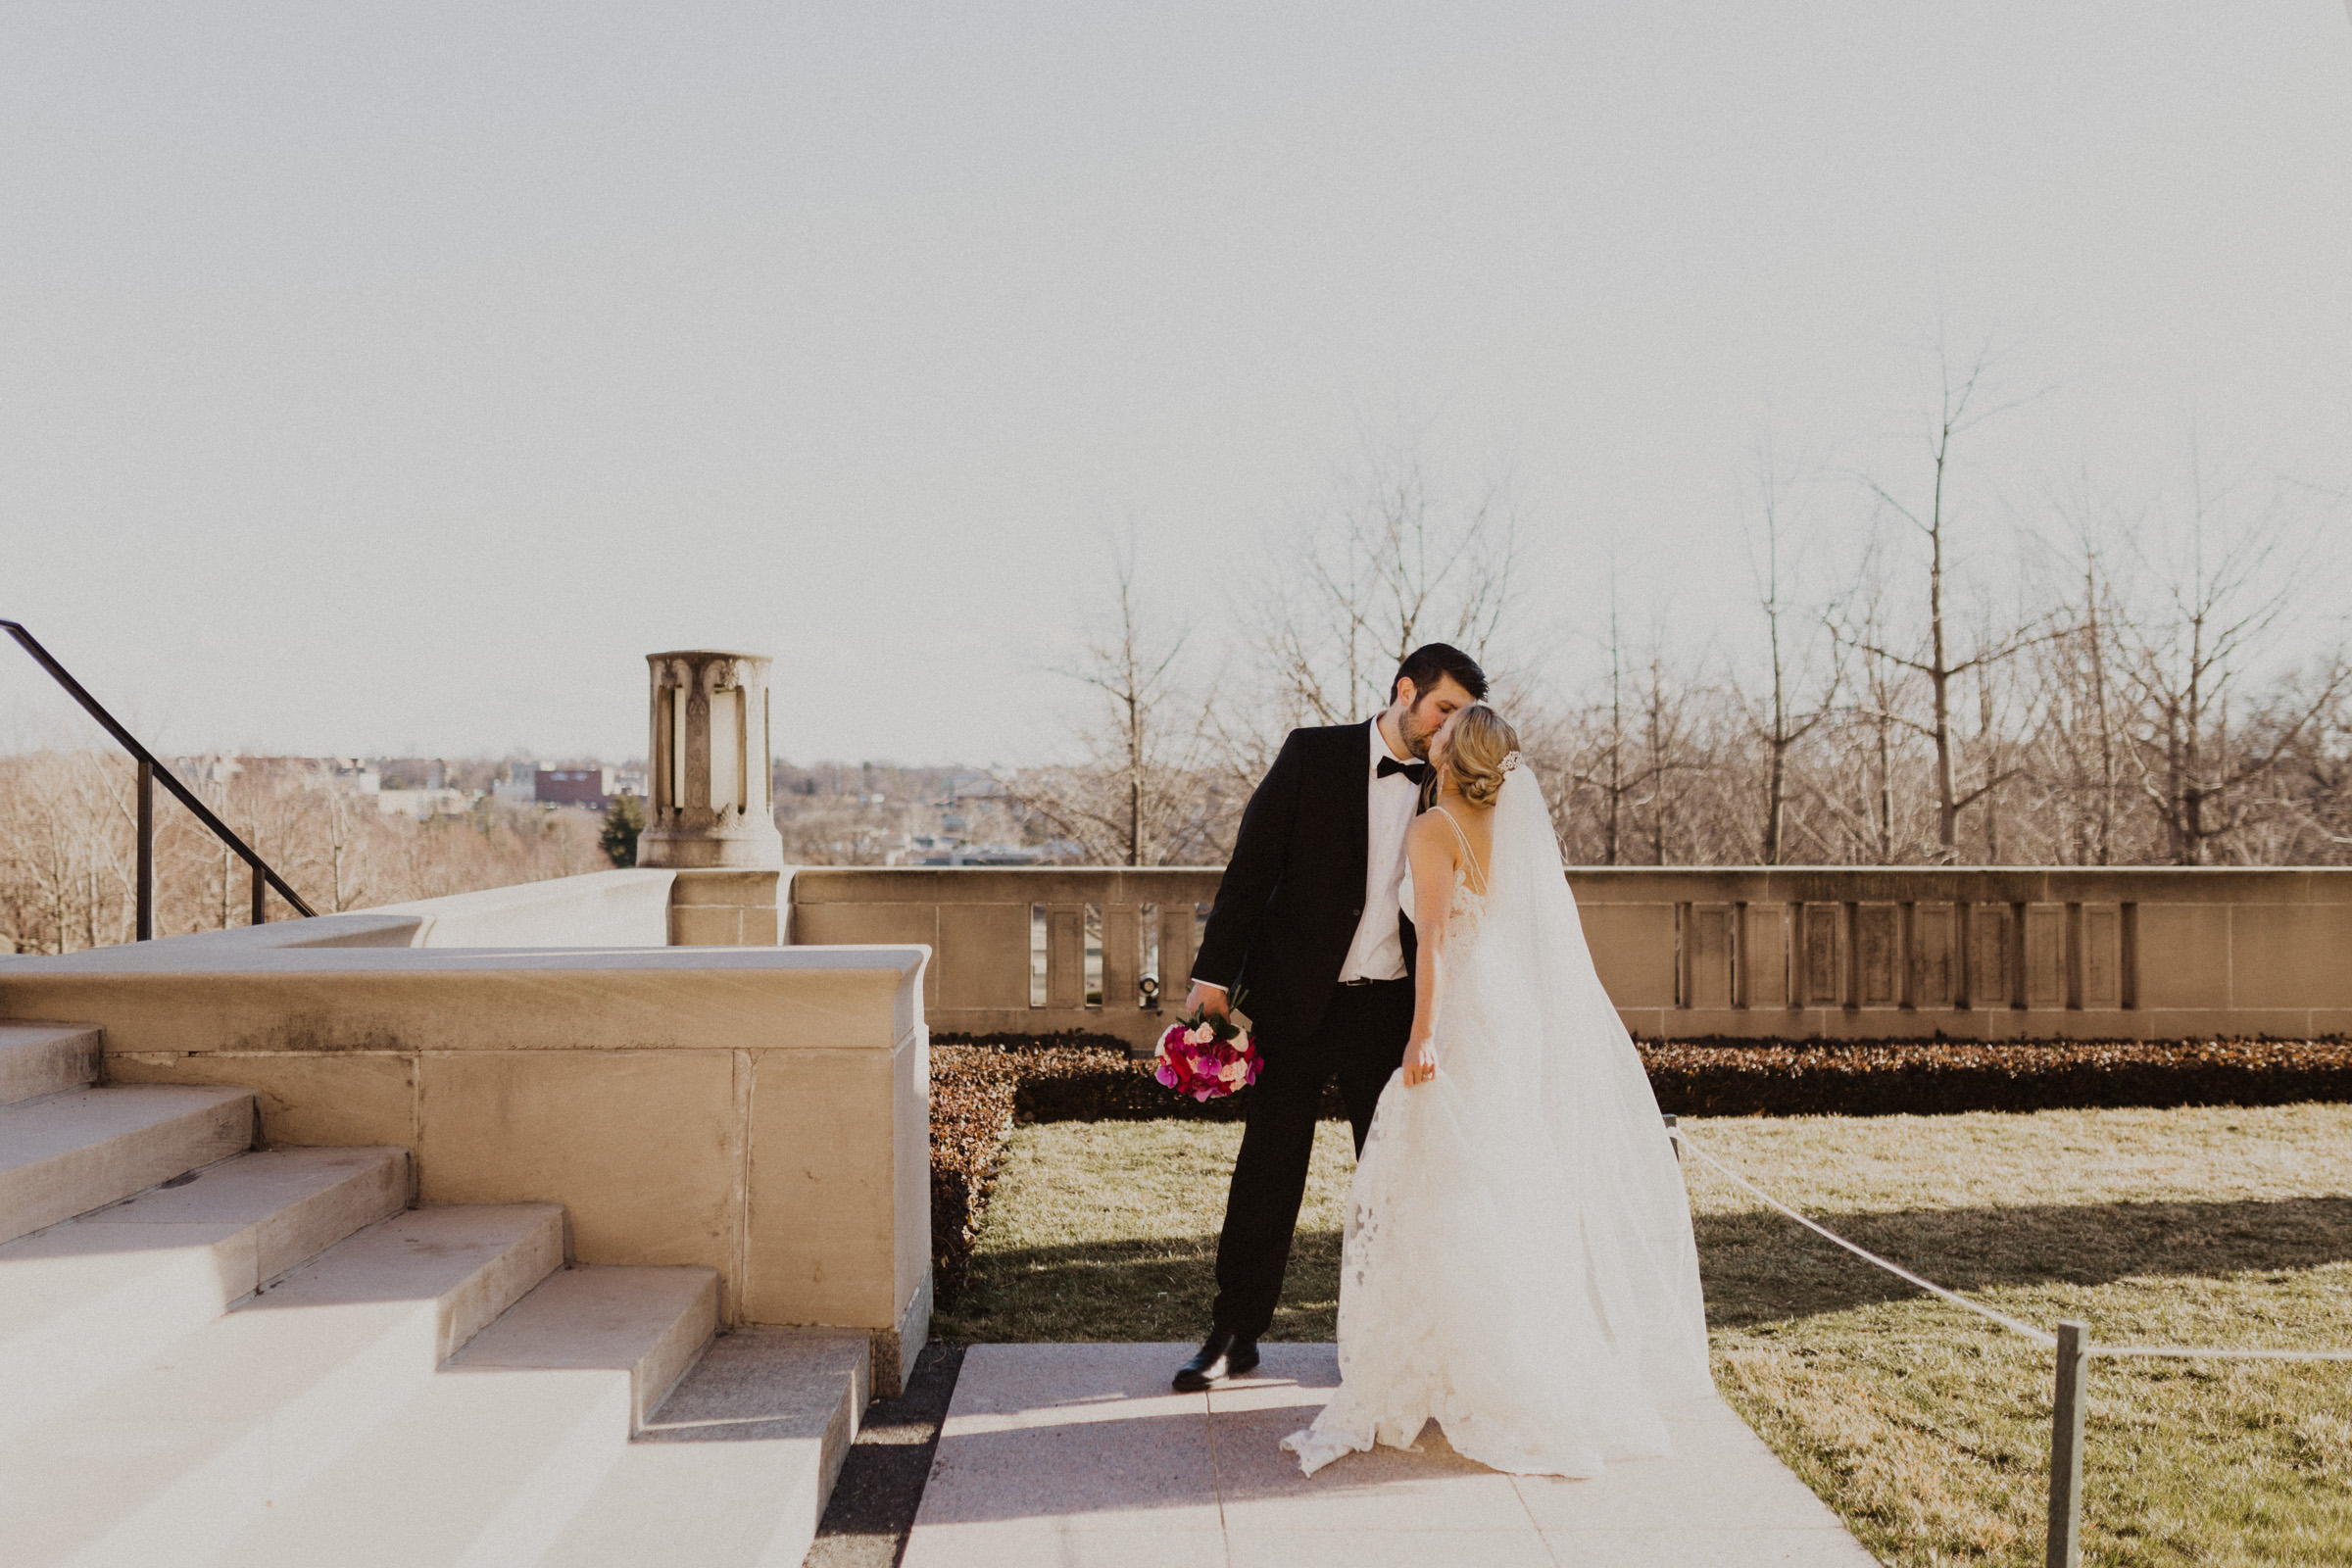 alyssa barletter photography nelson atkins museum intimate romantic spring wedding pilgrim chapel kcmo-42.jpg